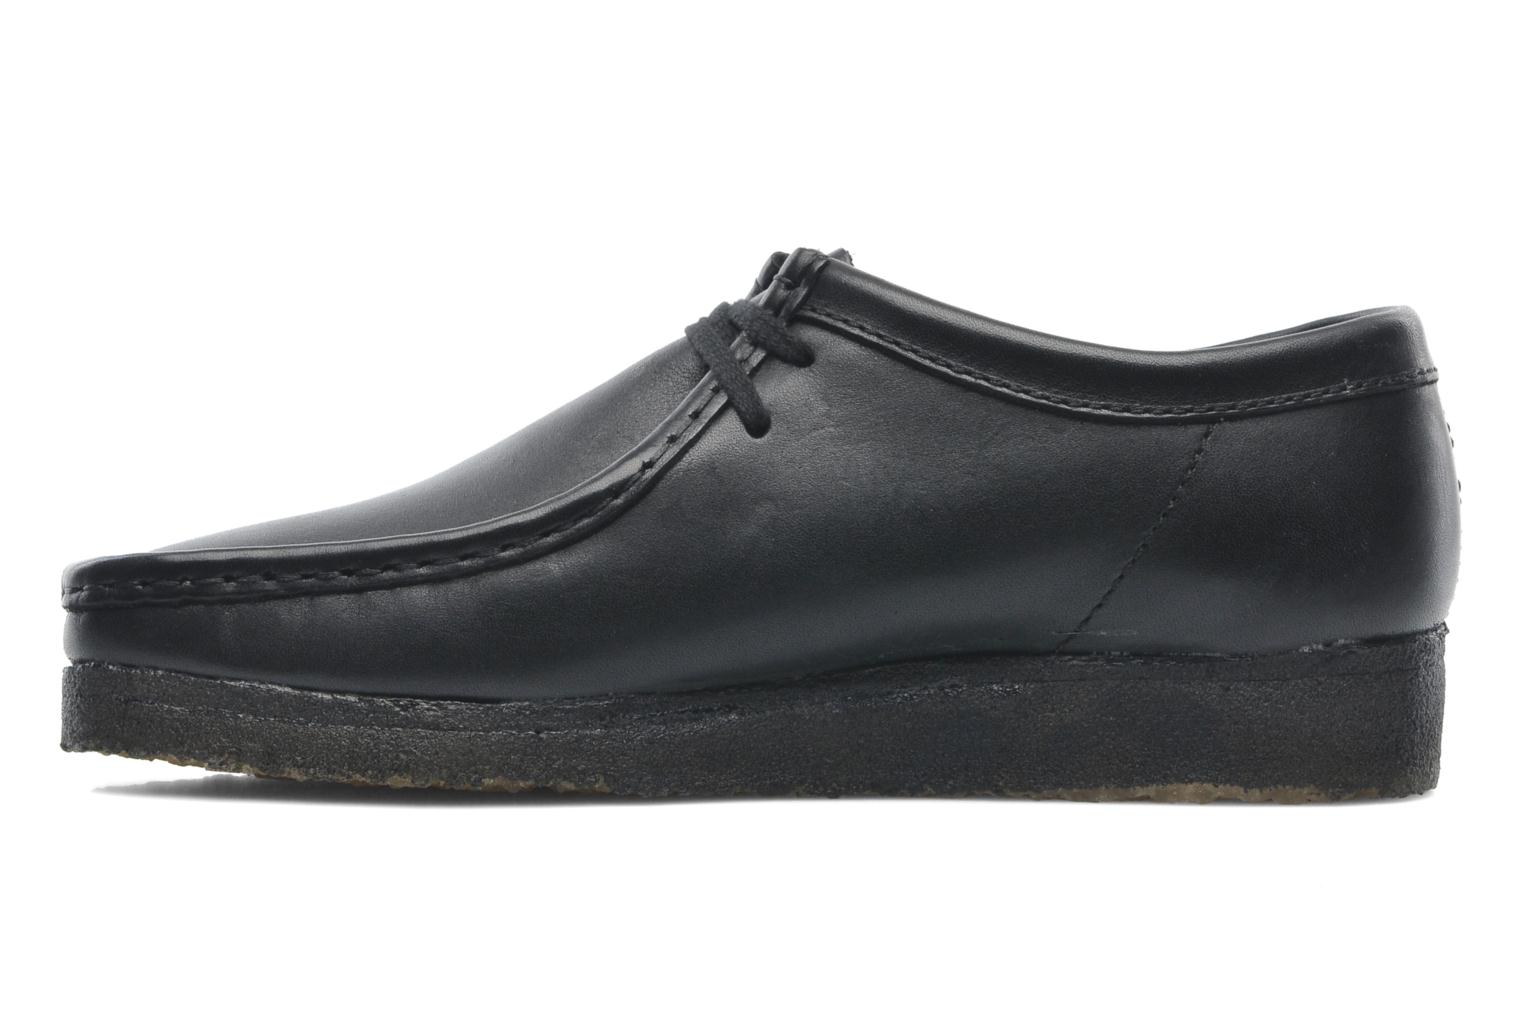 Lace-up shoes Clarks Originals Wallabee M Black front view